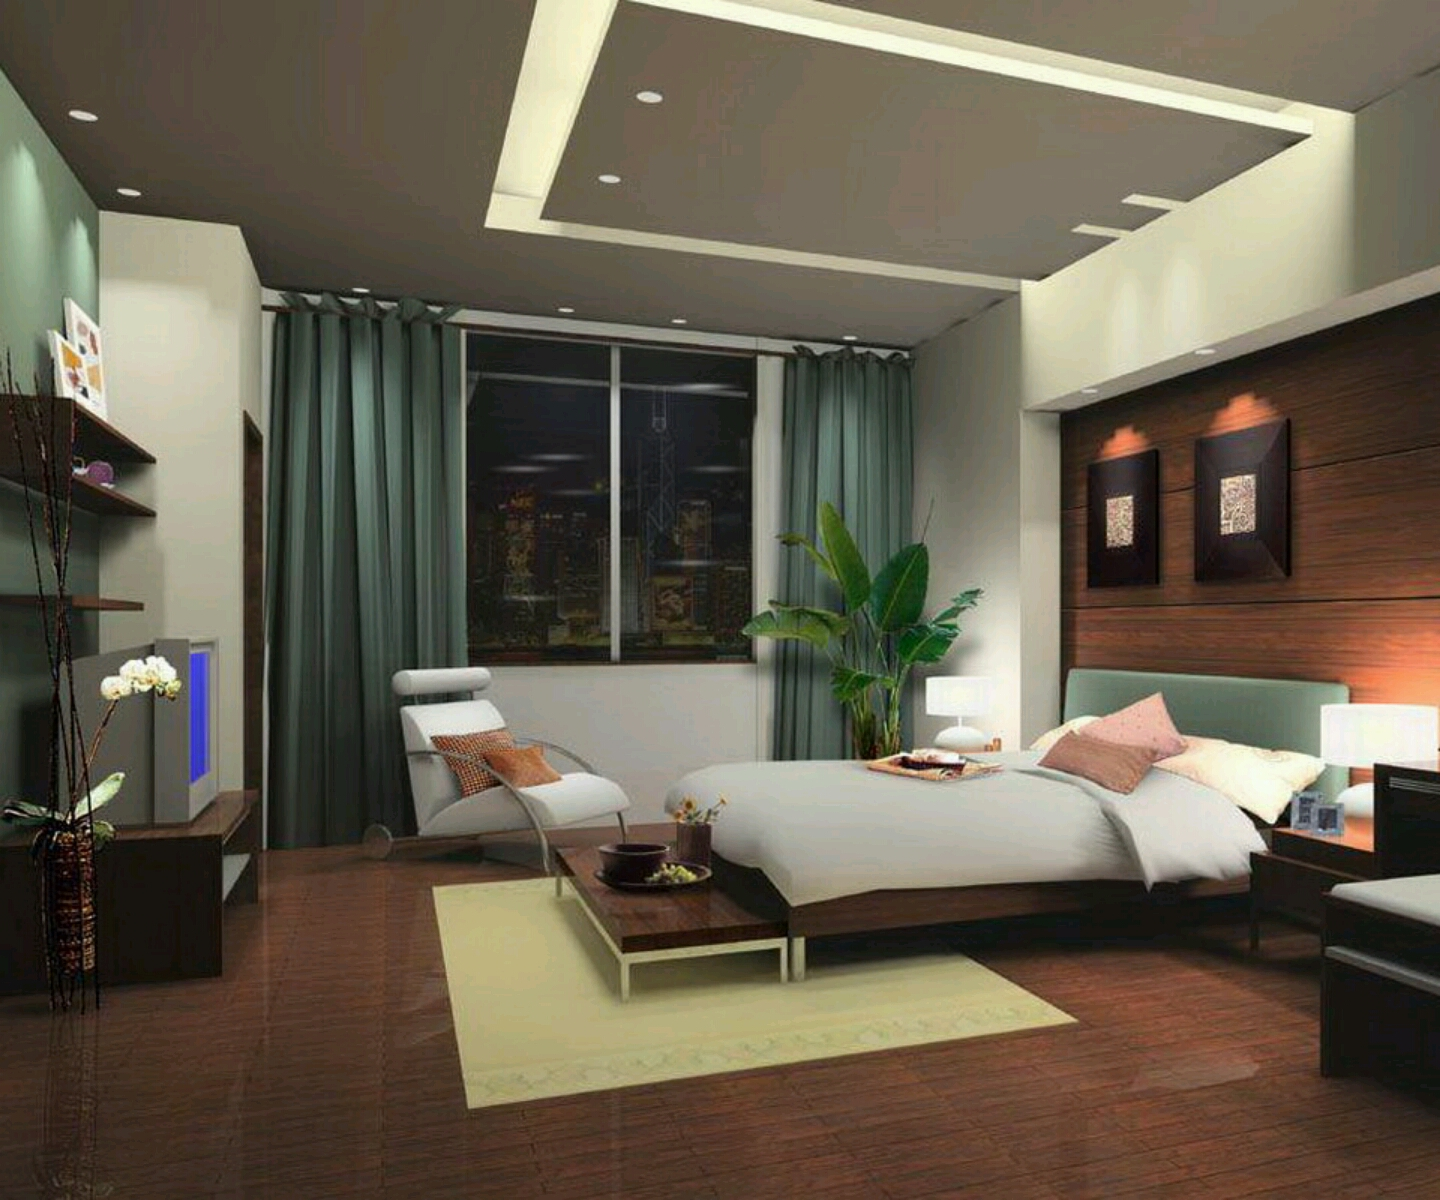 New Home Designs Latest Modern Bedrooms Designs Best Ideas: photos of bedrooms interior design